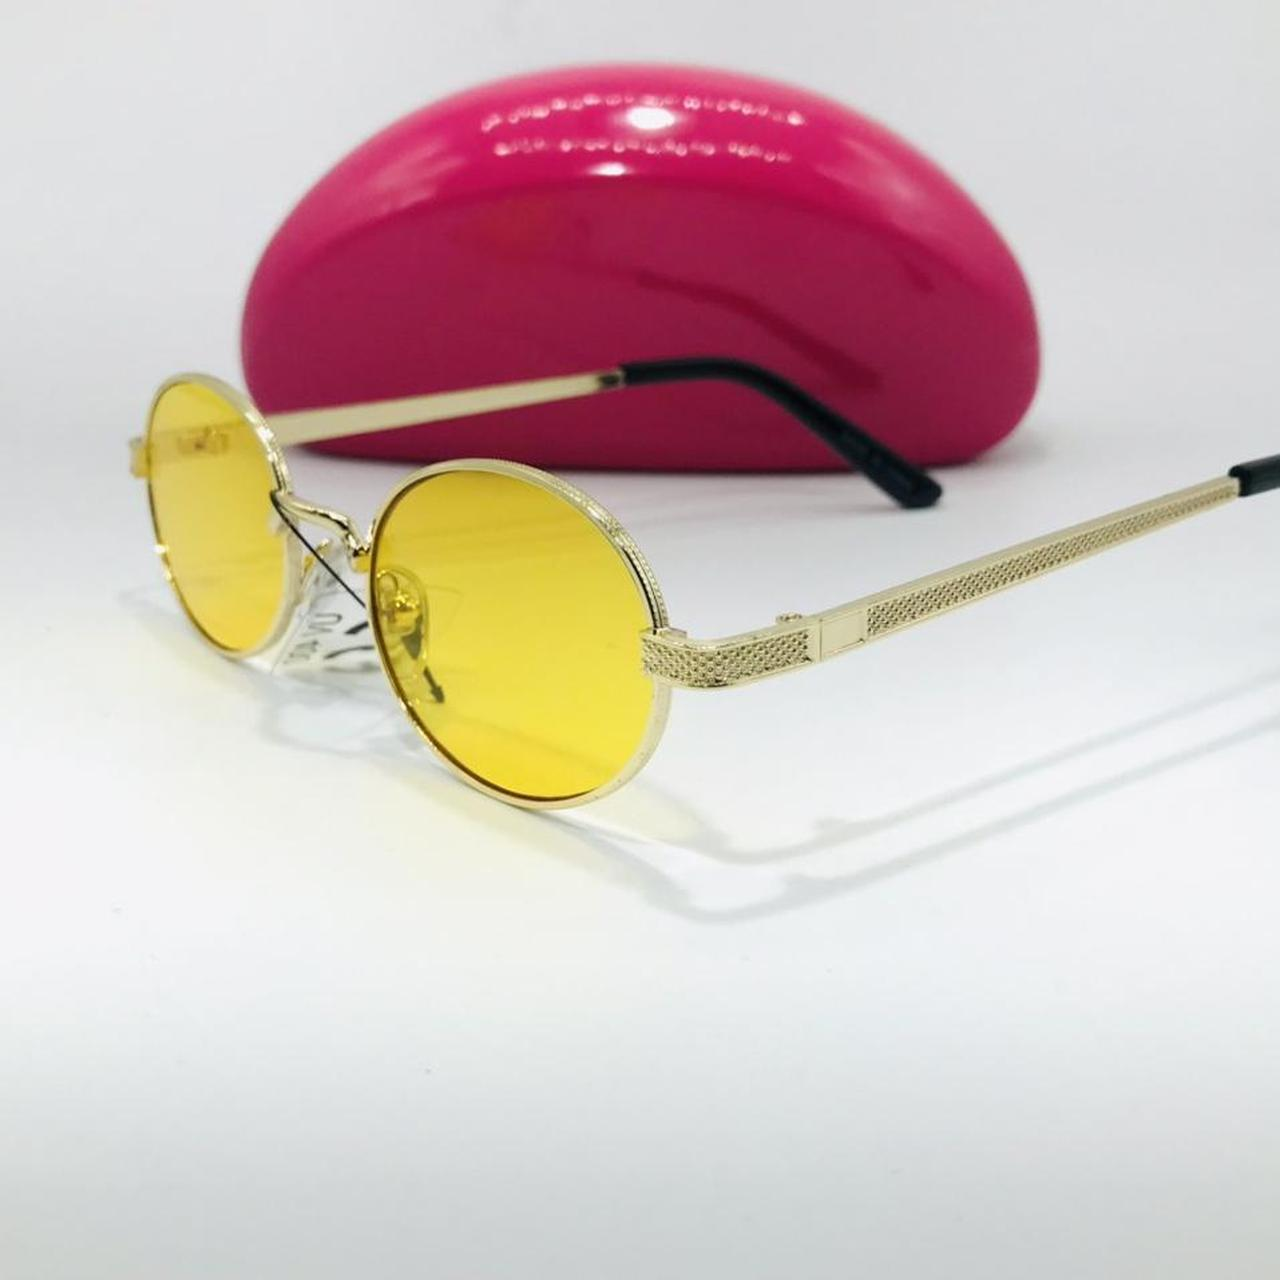 Product Image 1 - Stylish Shades  All Sunglasses include